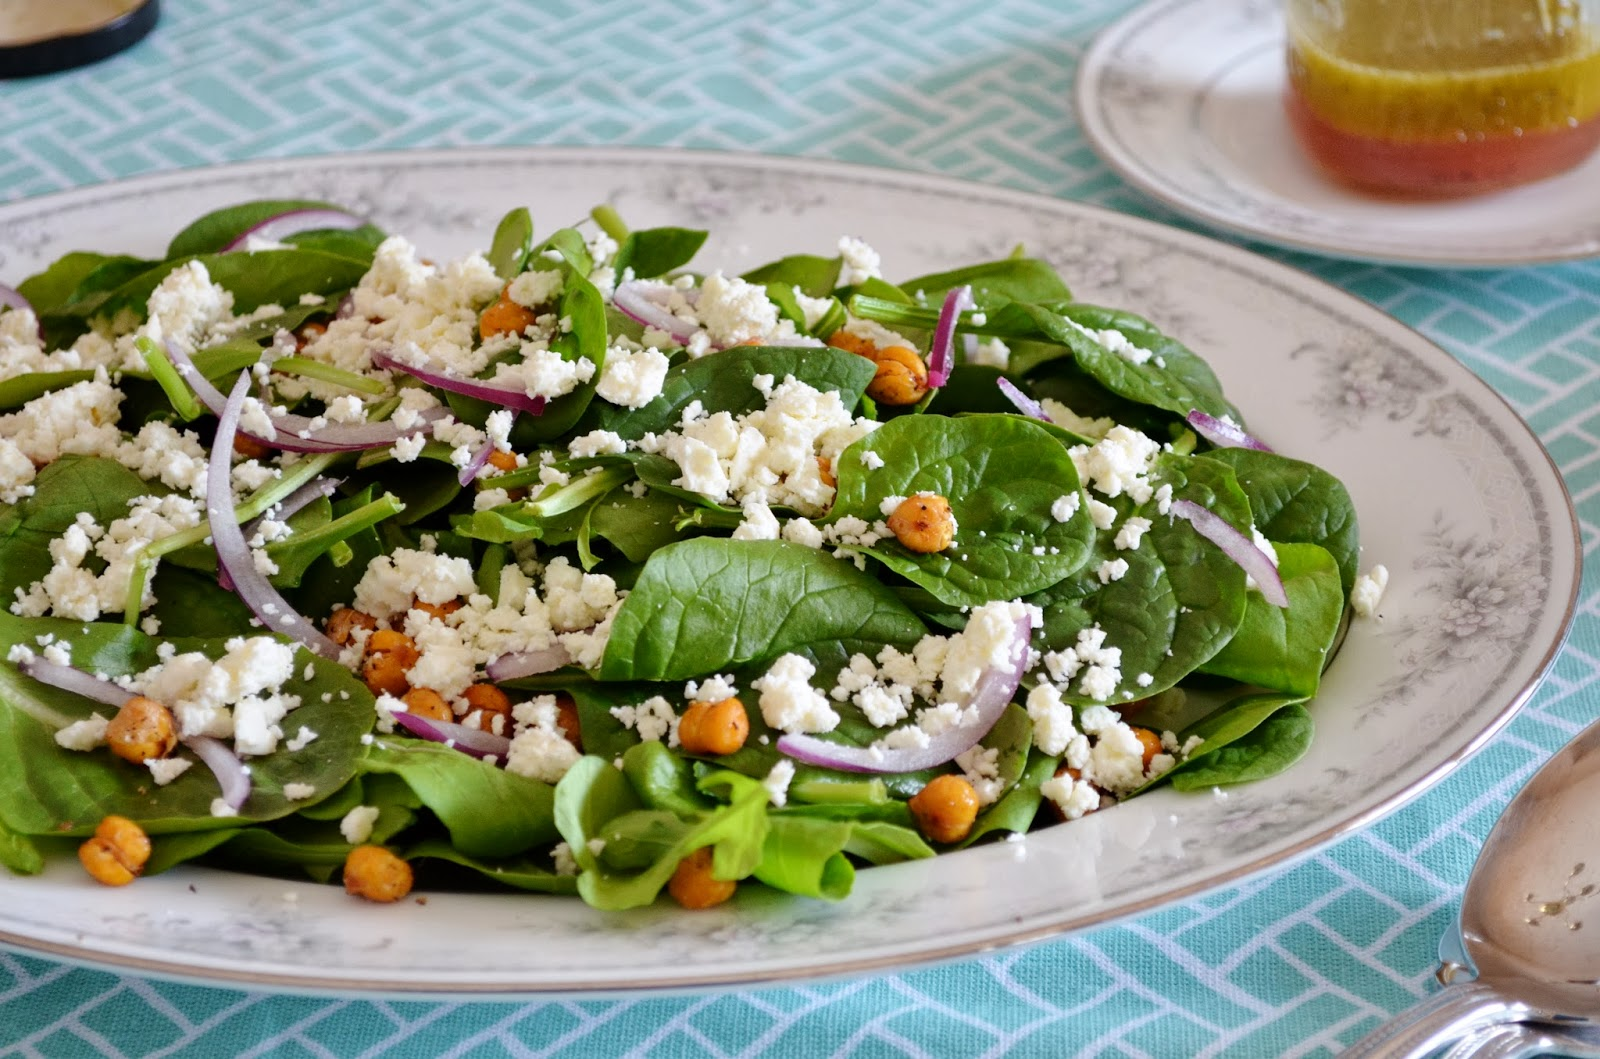 Roasted Chickpea Salad with Arugula, Feta, and Lemon-Mint Vinaigrette